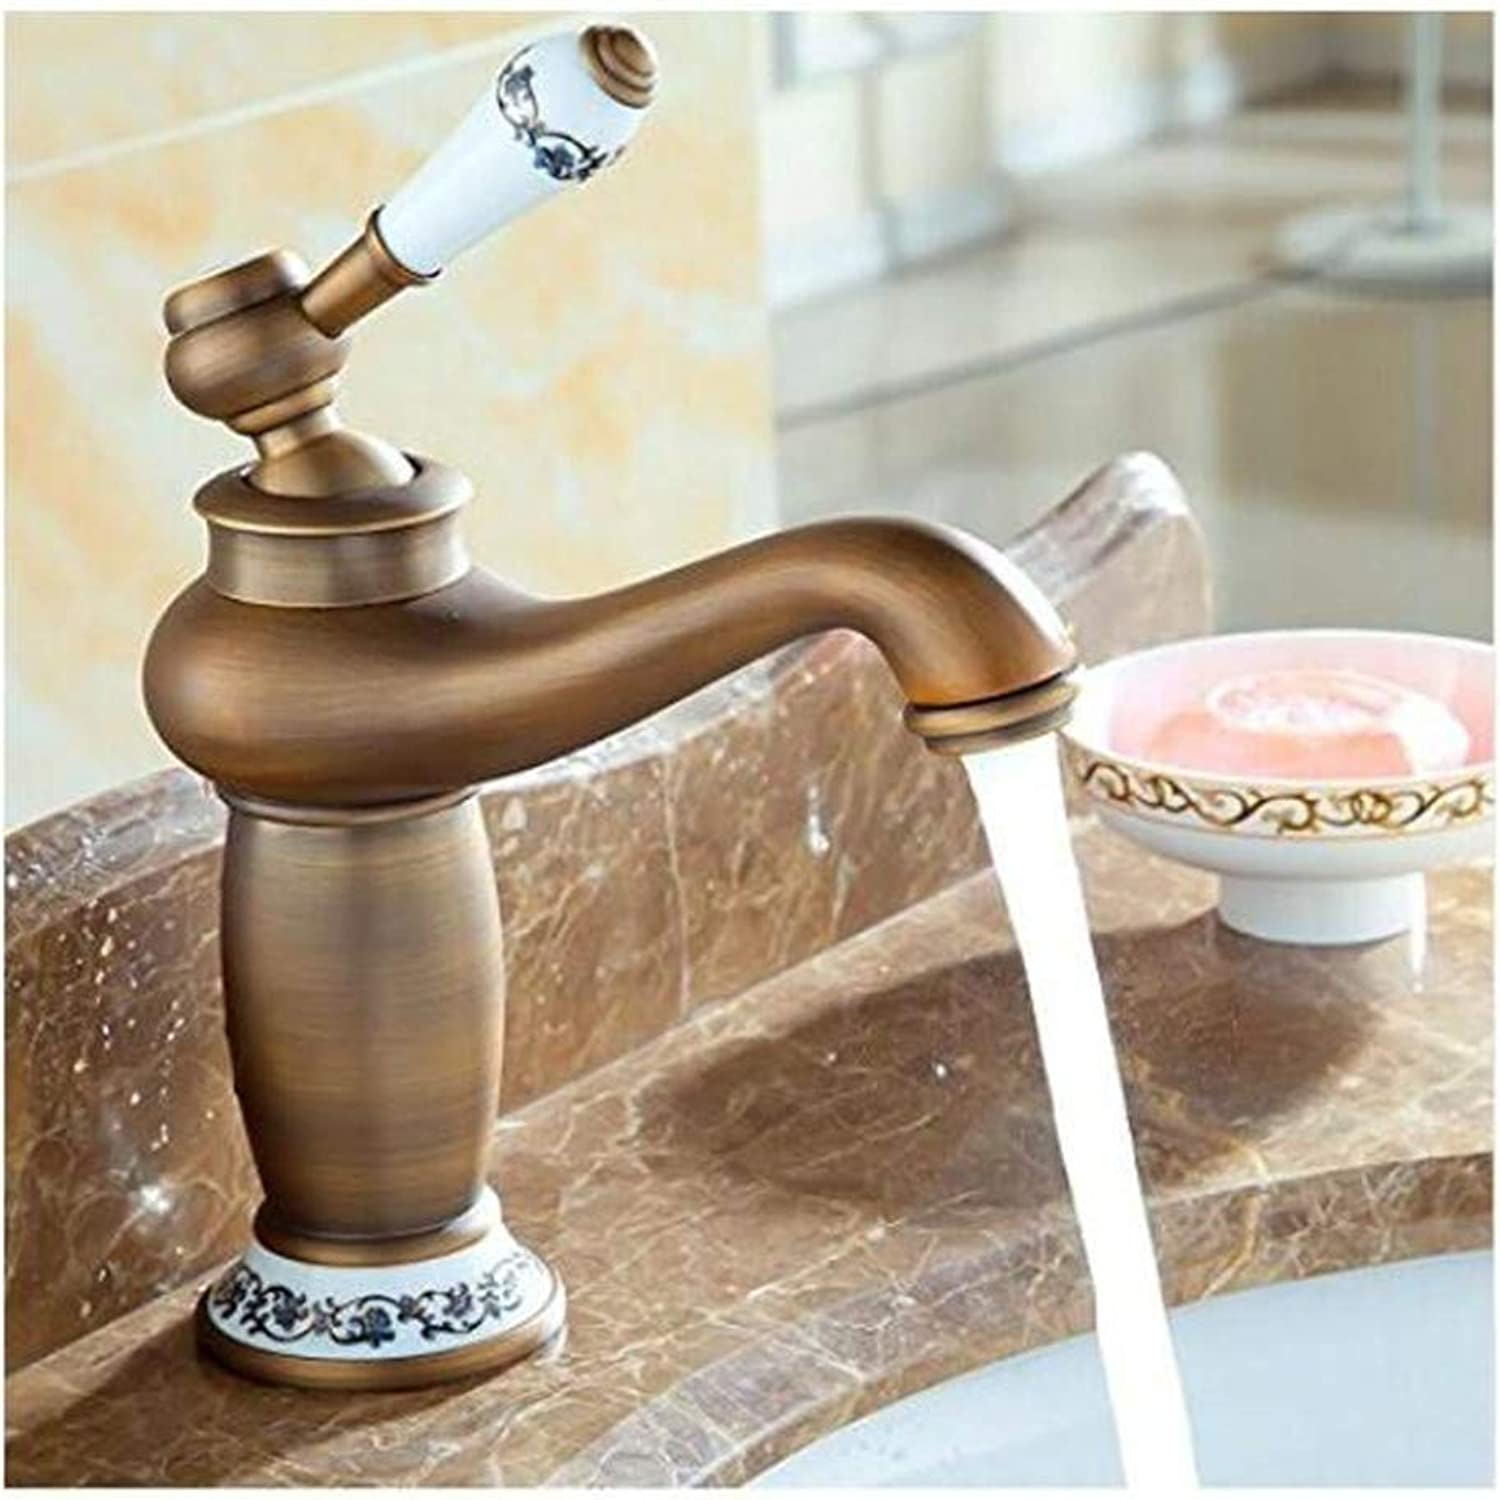 Faucet Kitchen Bathroom Retro Mixer Faucet Antique Brass Ceramic Handle Bathroom Basin Sink Faucet Countertop Mixer Tap with Hot and Cold Water